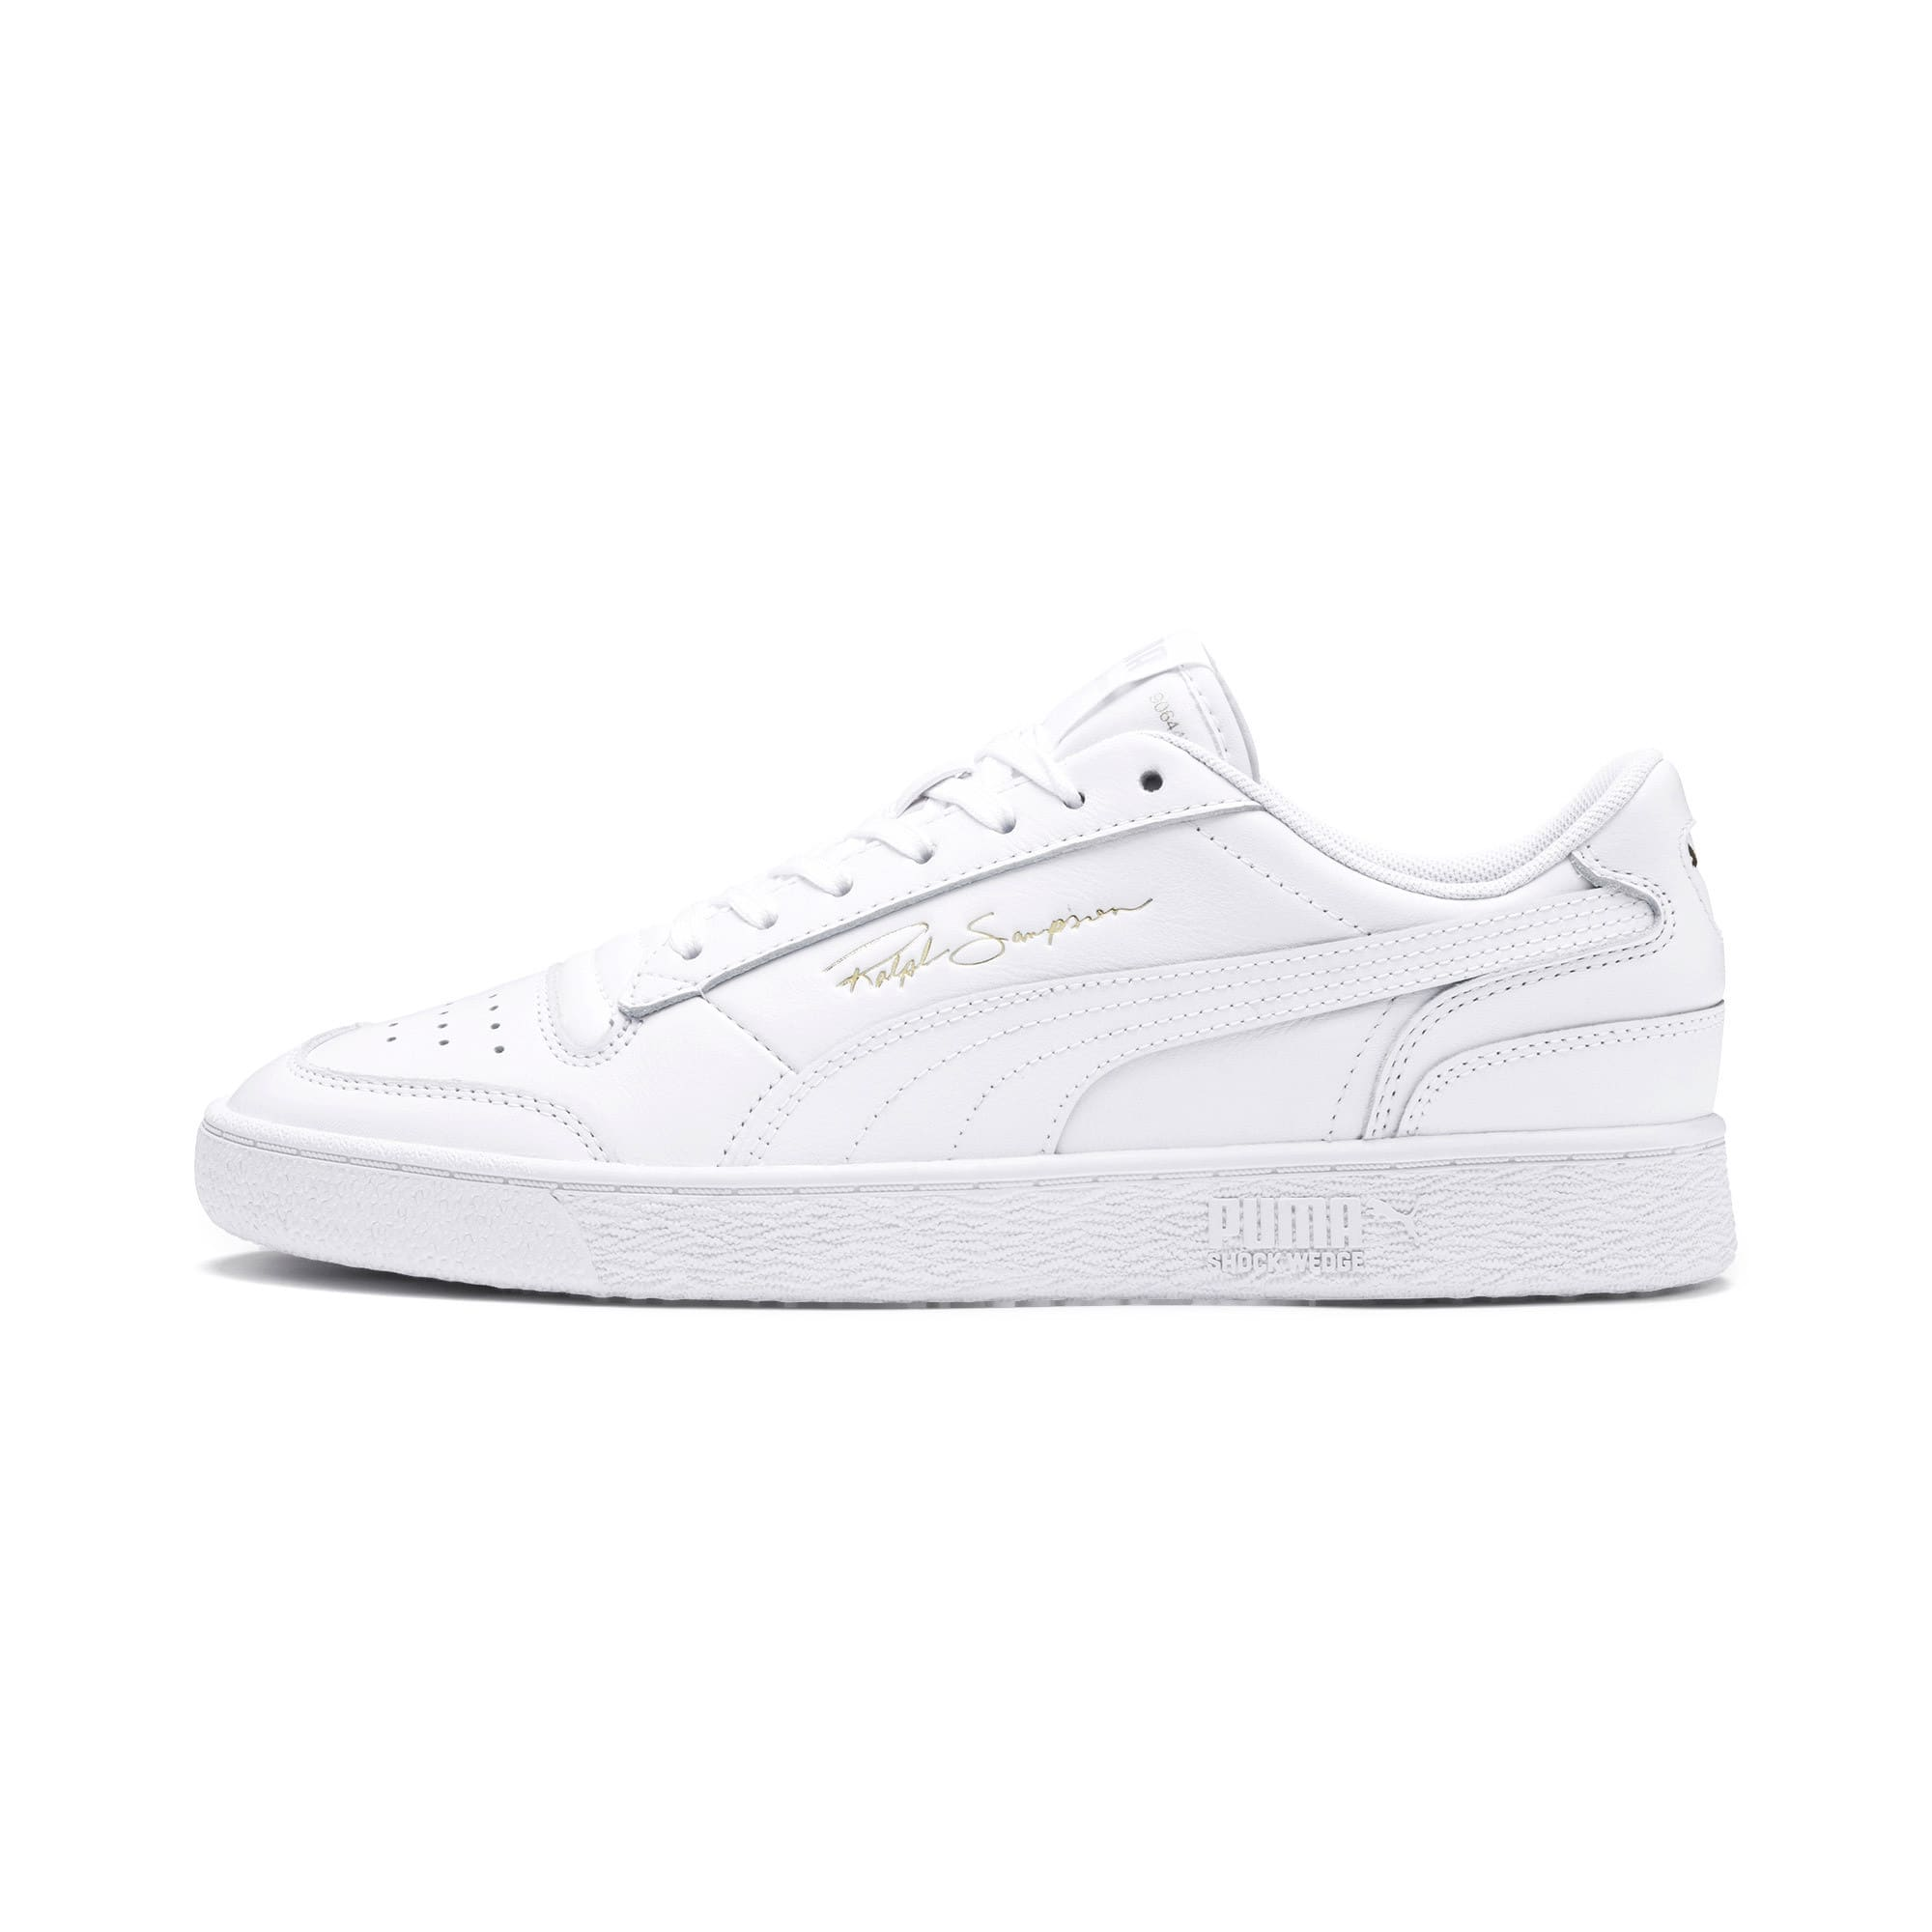 Thumbnail 1 of Ralph Sampson Lo Sneakers, Puma Wht-Puma Wht-Puma Wht, medium